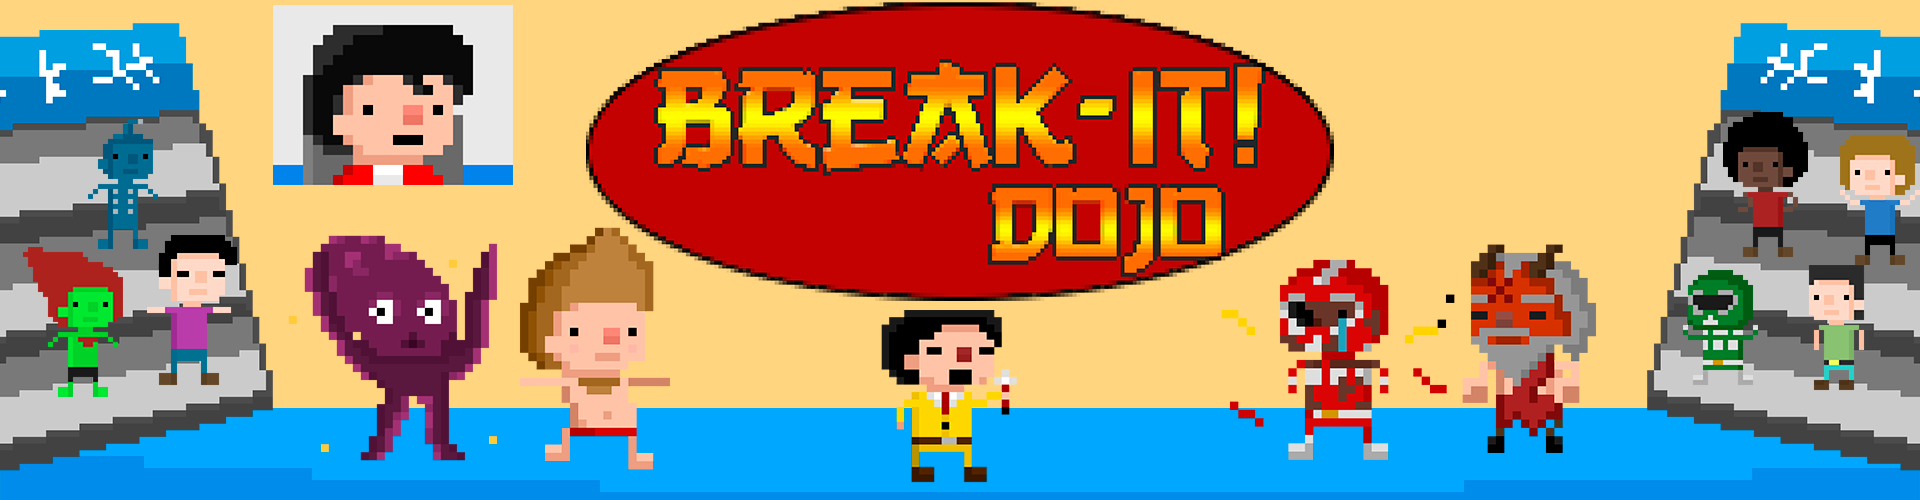 Break it! Dojo